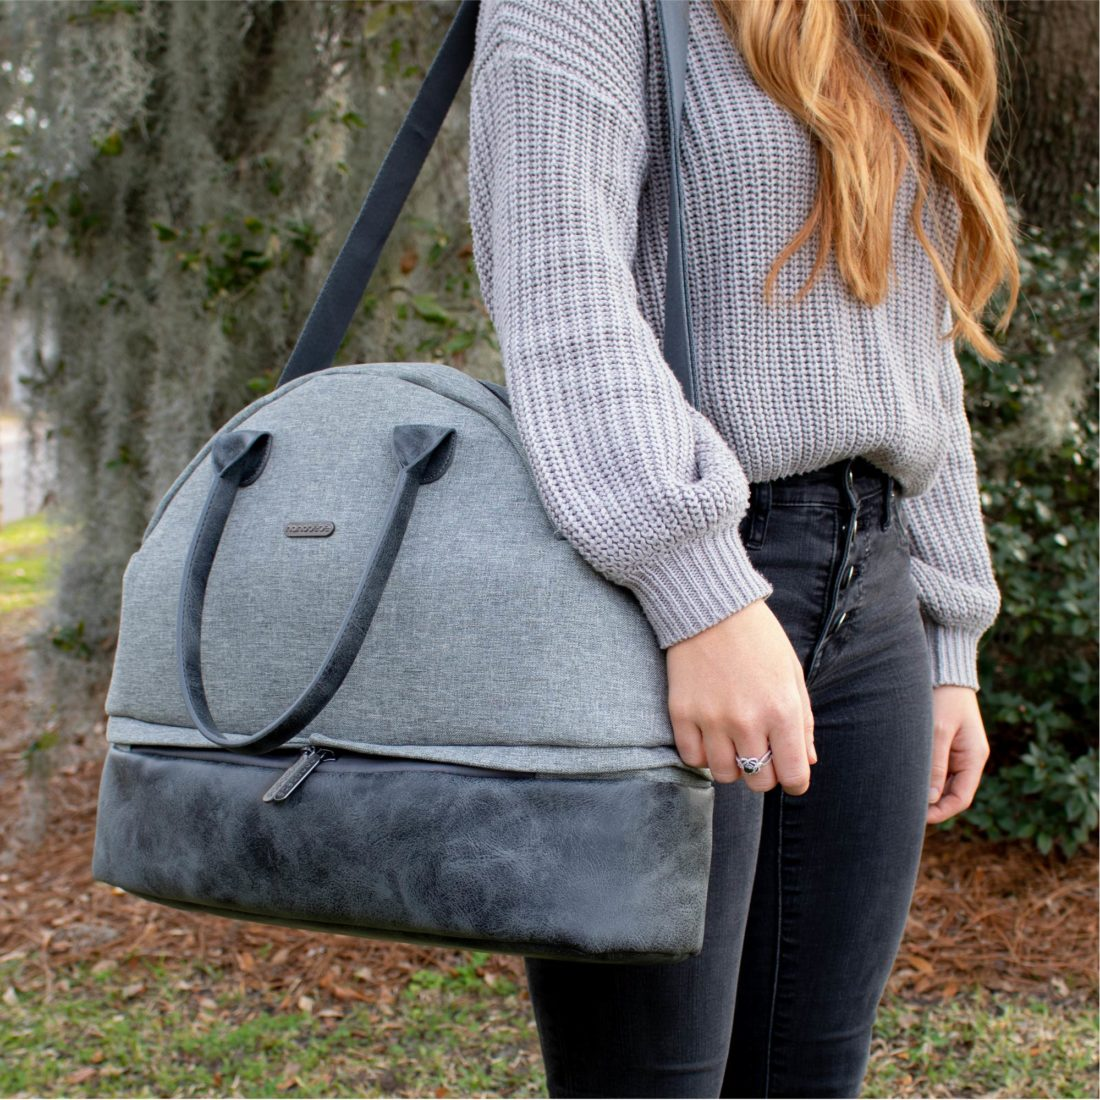 How to Choose a Diaper Bag: 5 Essential Features of the Best Diaper Bag - Duet Diaper Bag